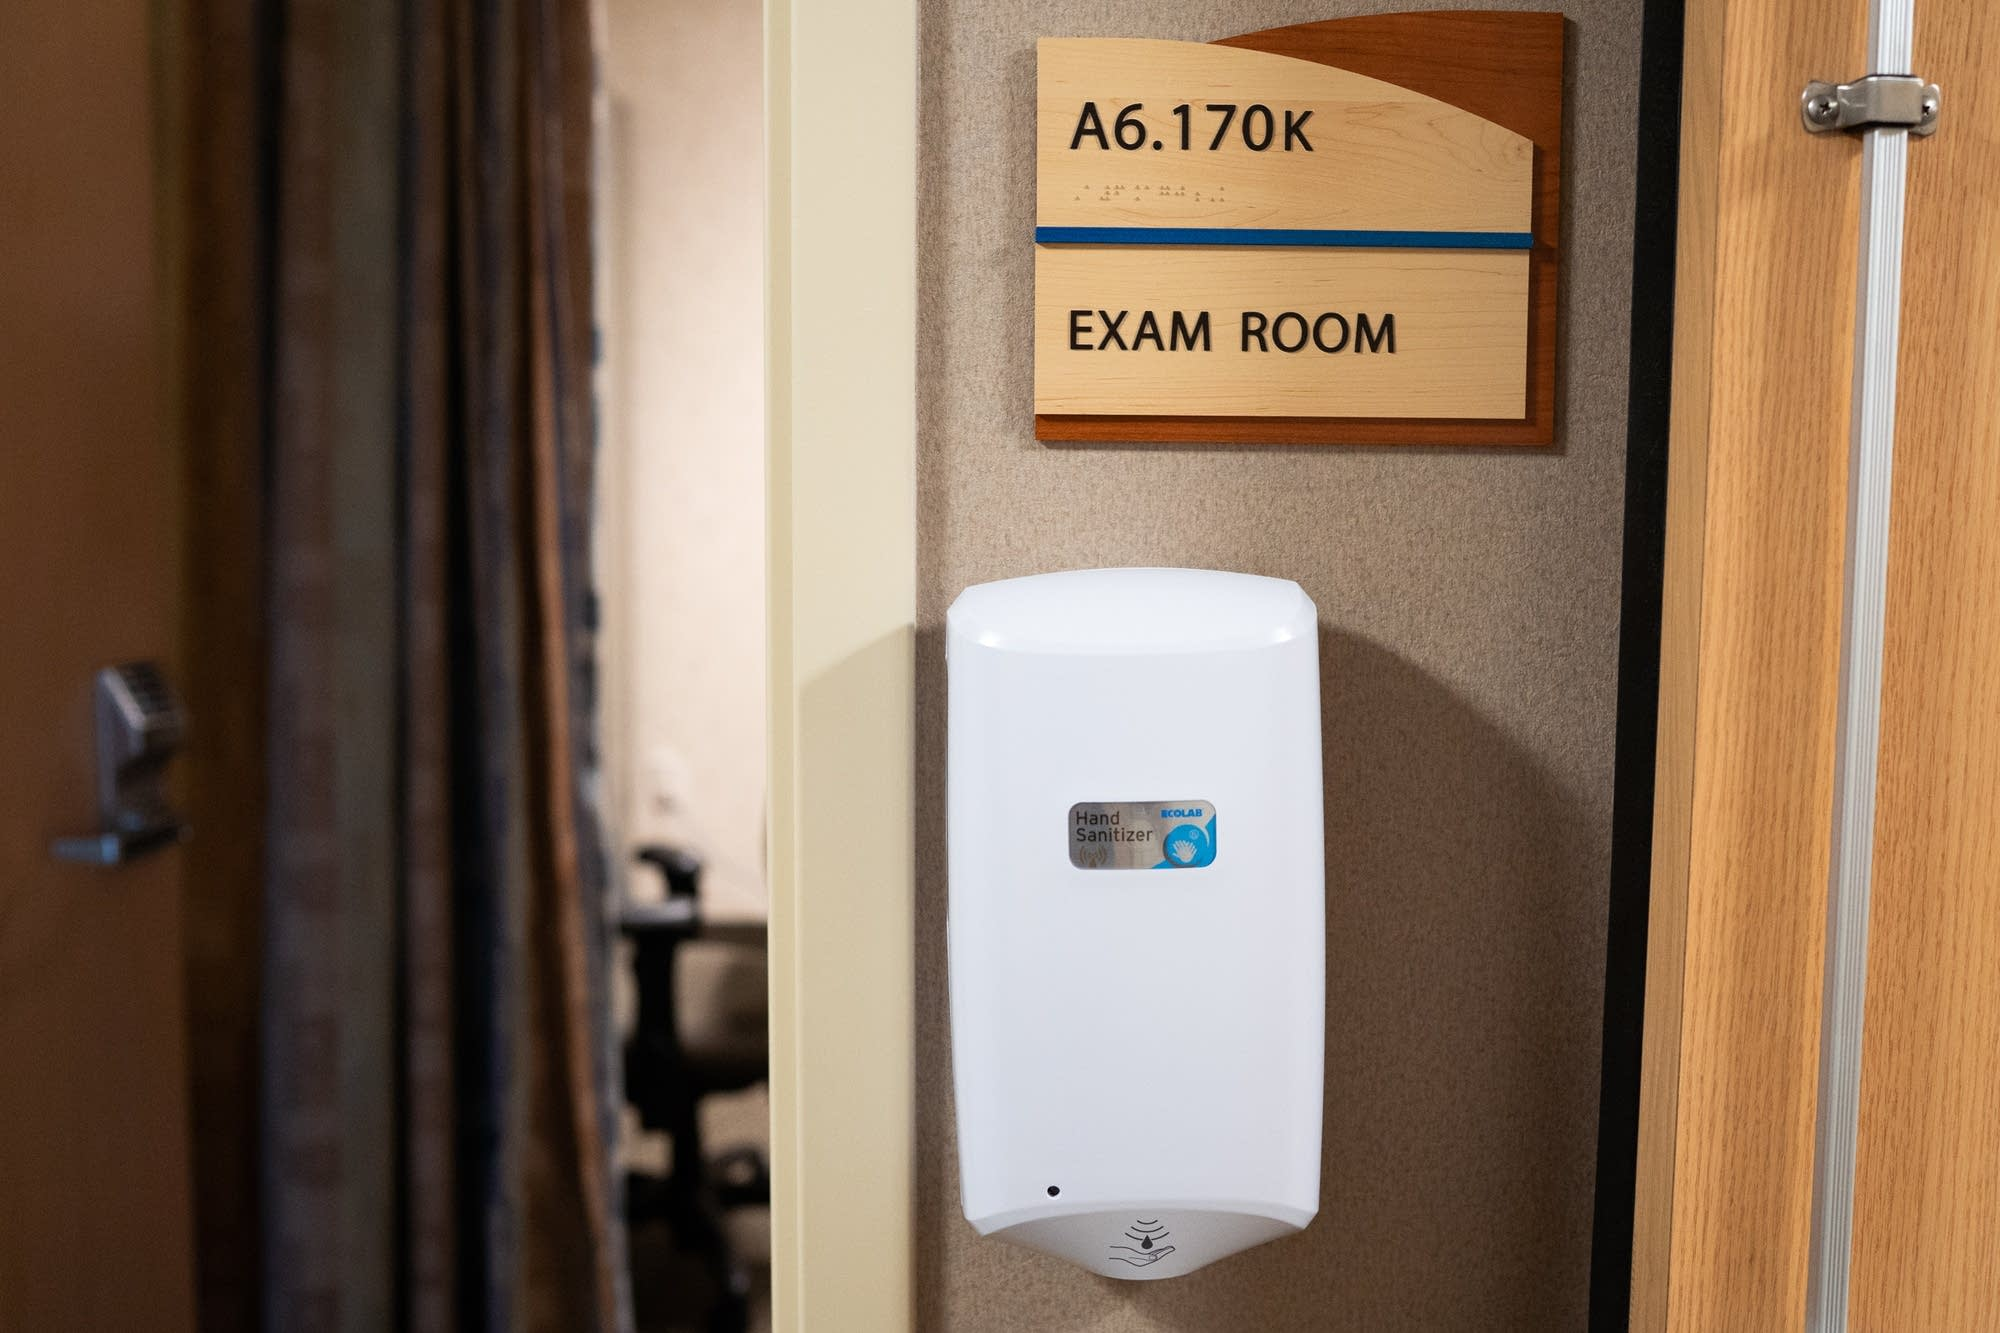 An automated hand sanitizer station hangs outside of an exam room